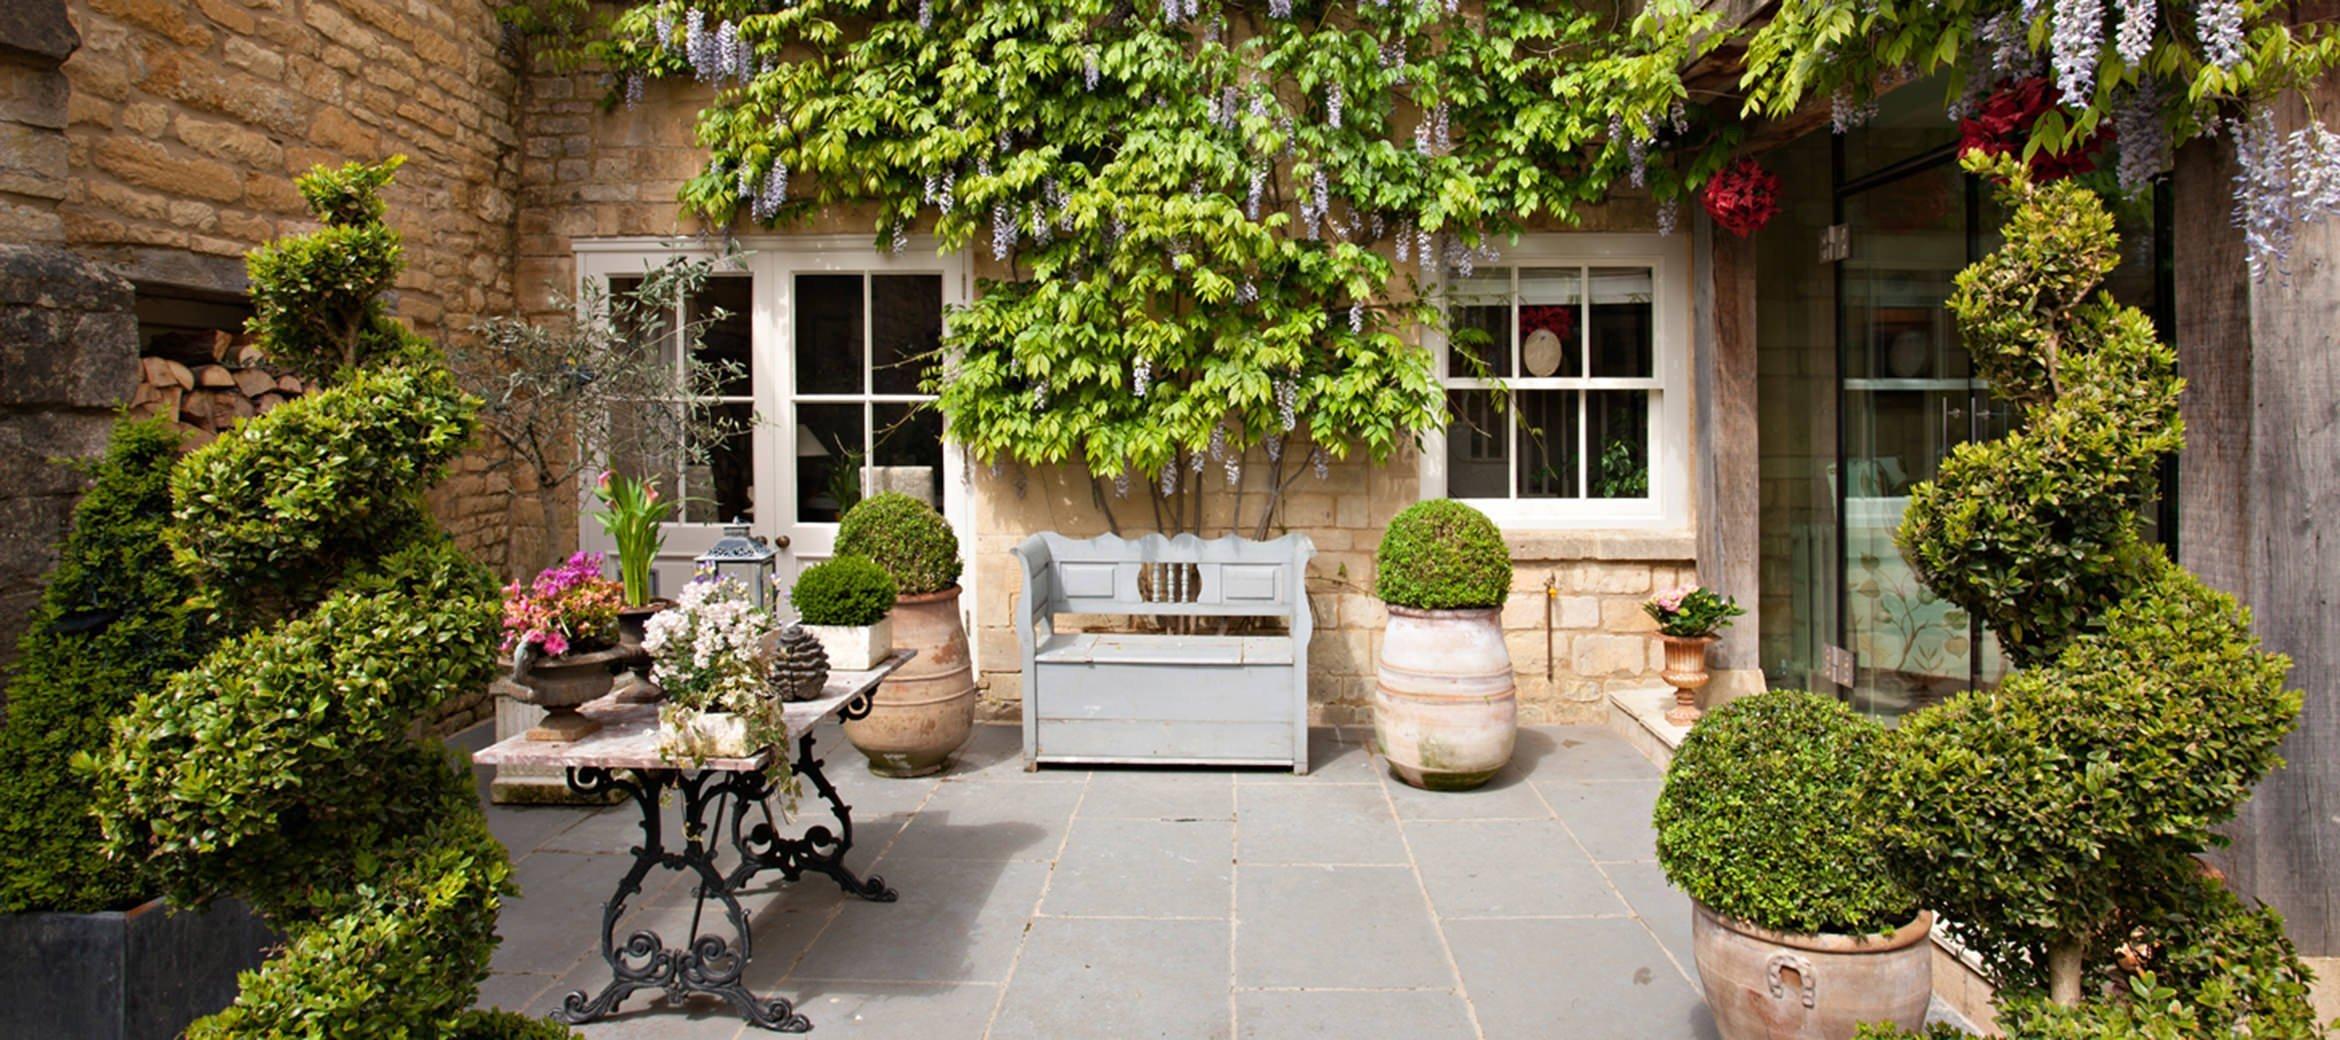 Singer-House-luxury-cotswold-cottage-Garden004